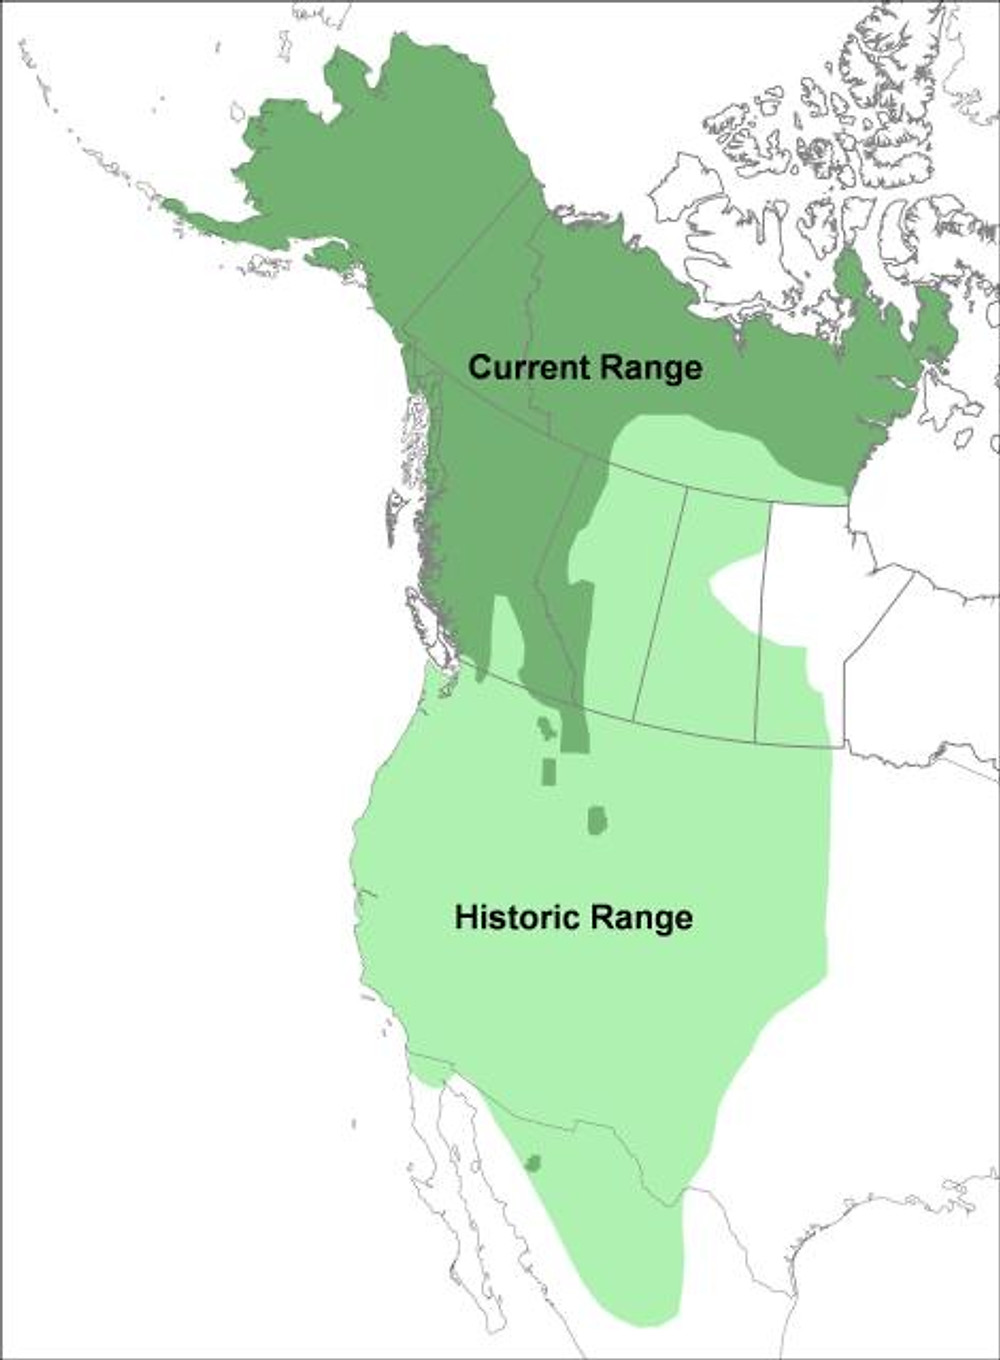 Grizzly bear range contracted since the late 1800s due mainly to human settlement.